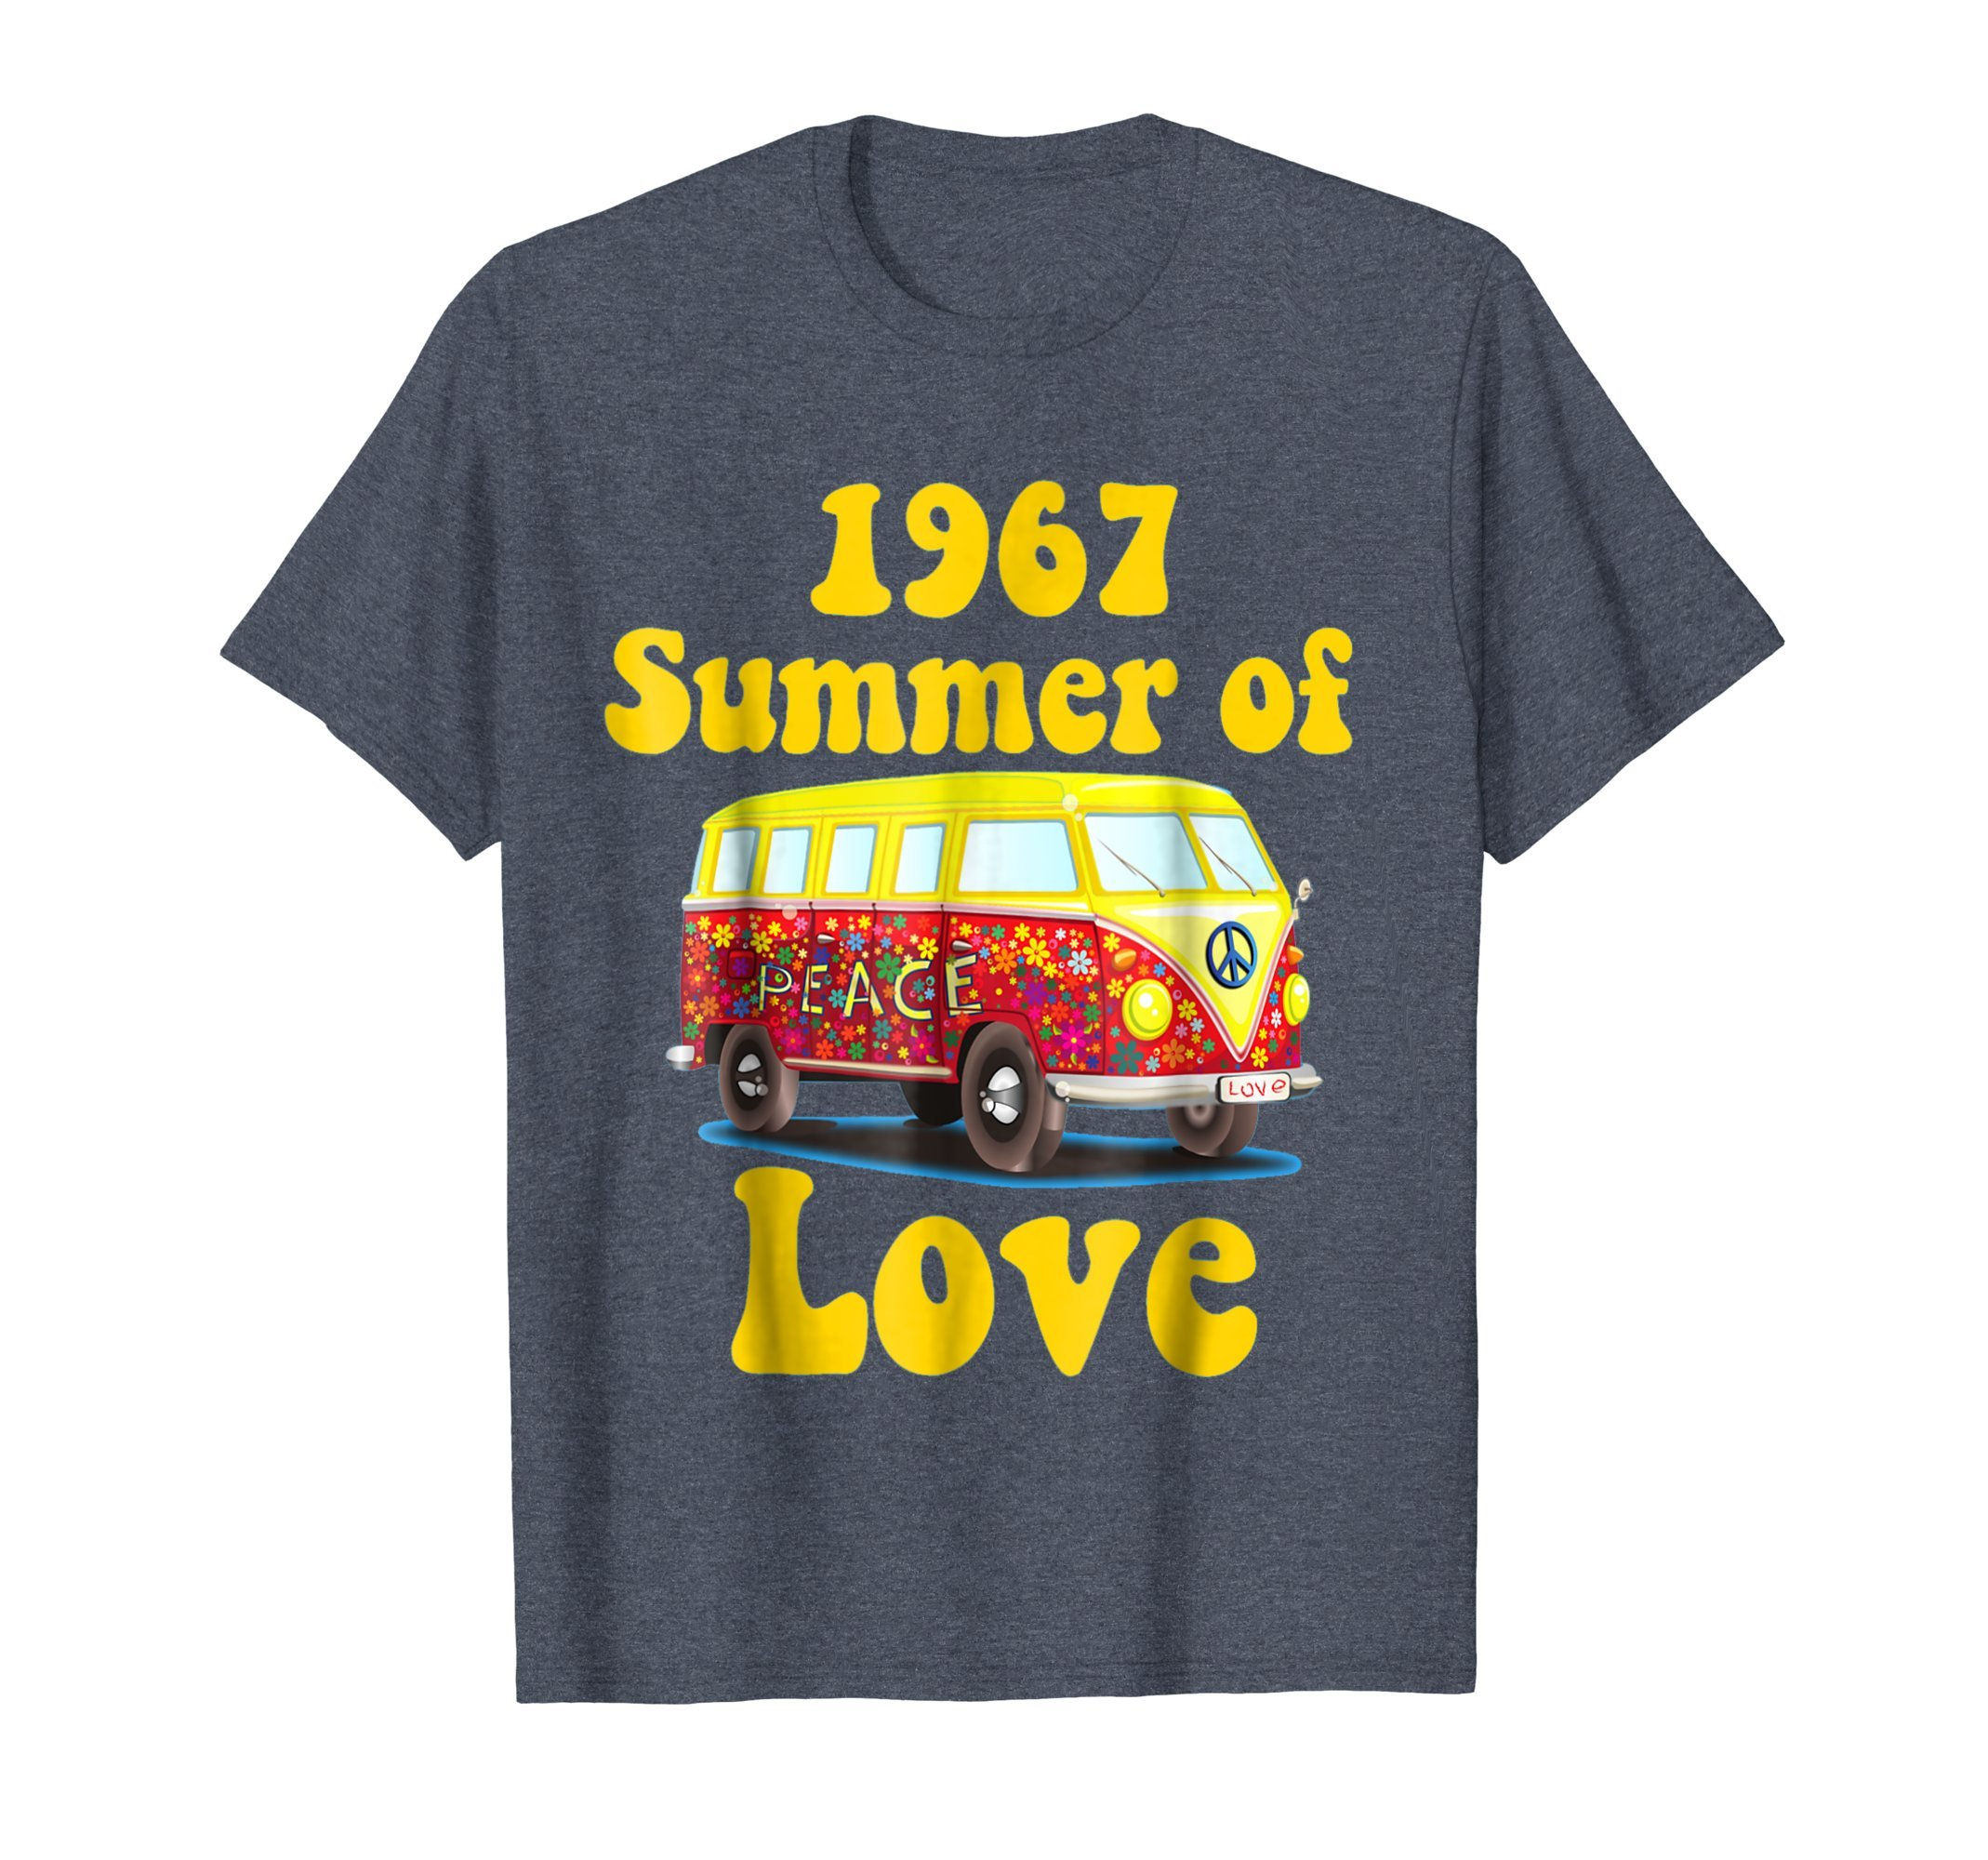 Mens 1967 Summer of Love Retro Tees Vintage Sixties Hippie Shirt 2XL Heather Blue